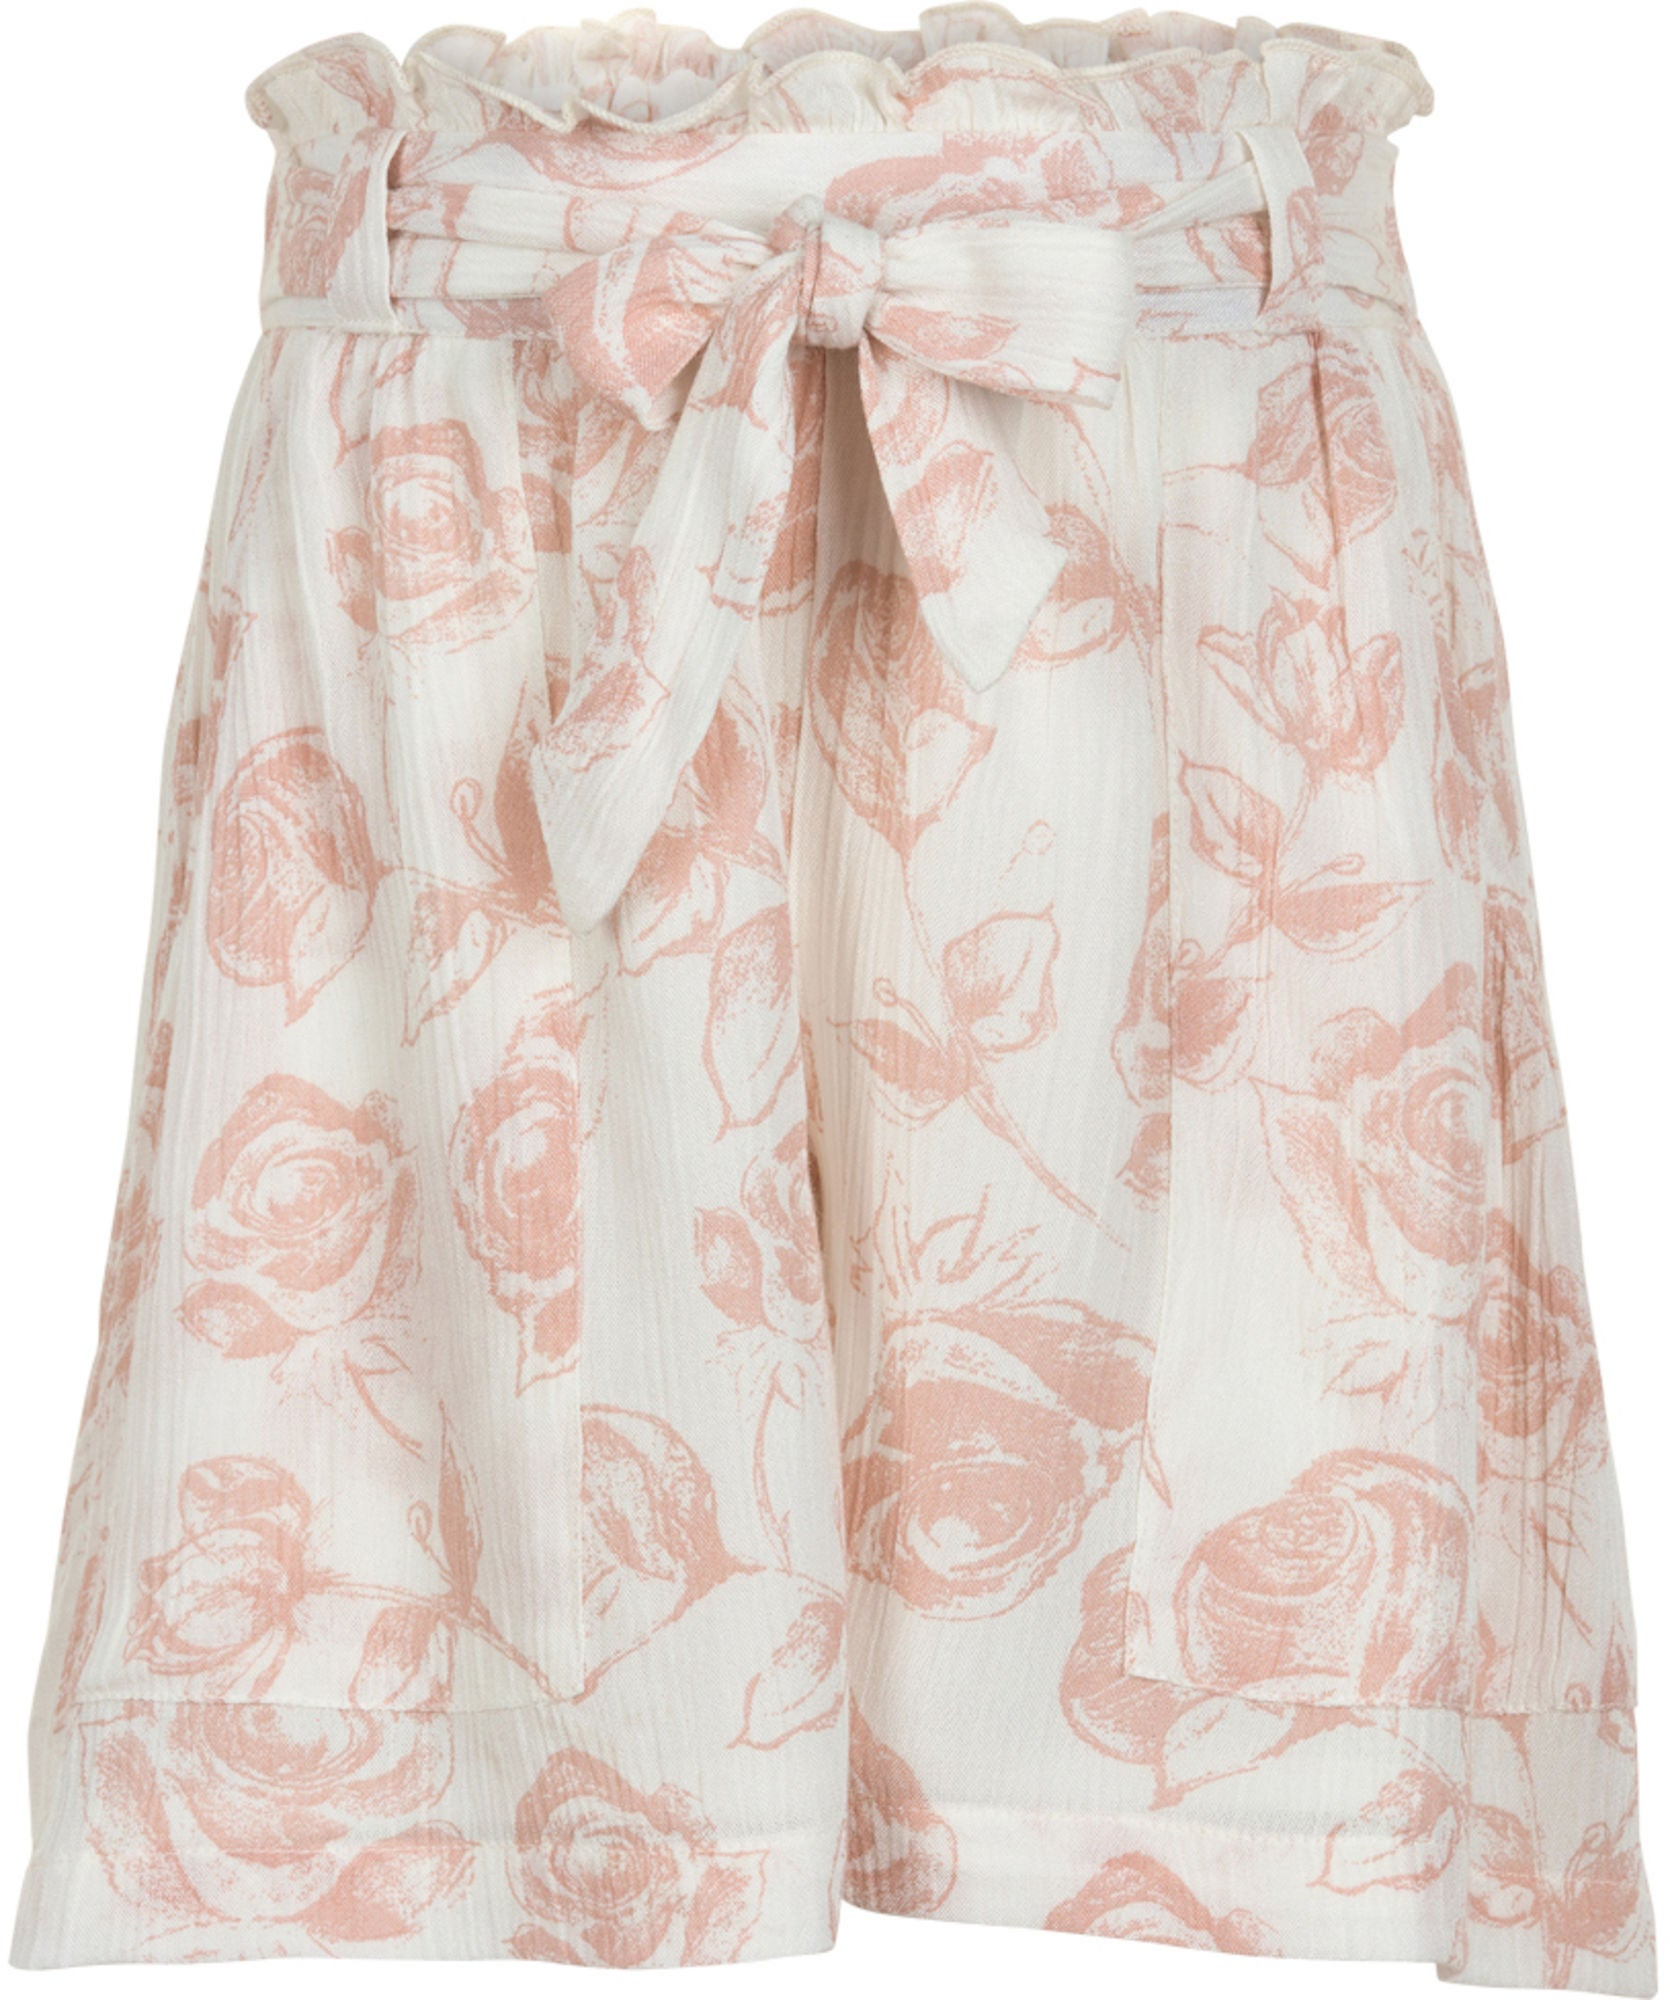 Creamie Roses Shorts, Cloud 116